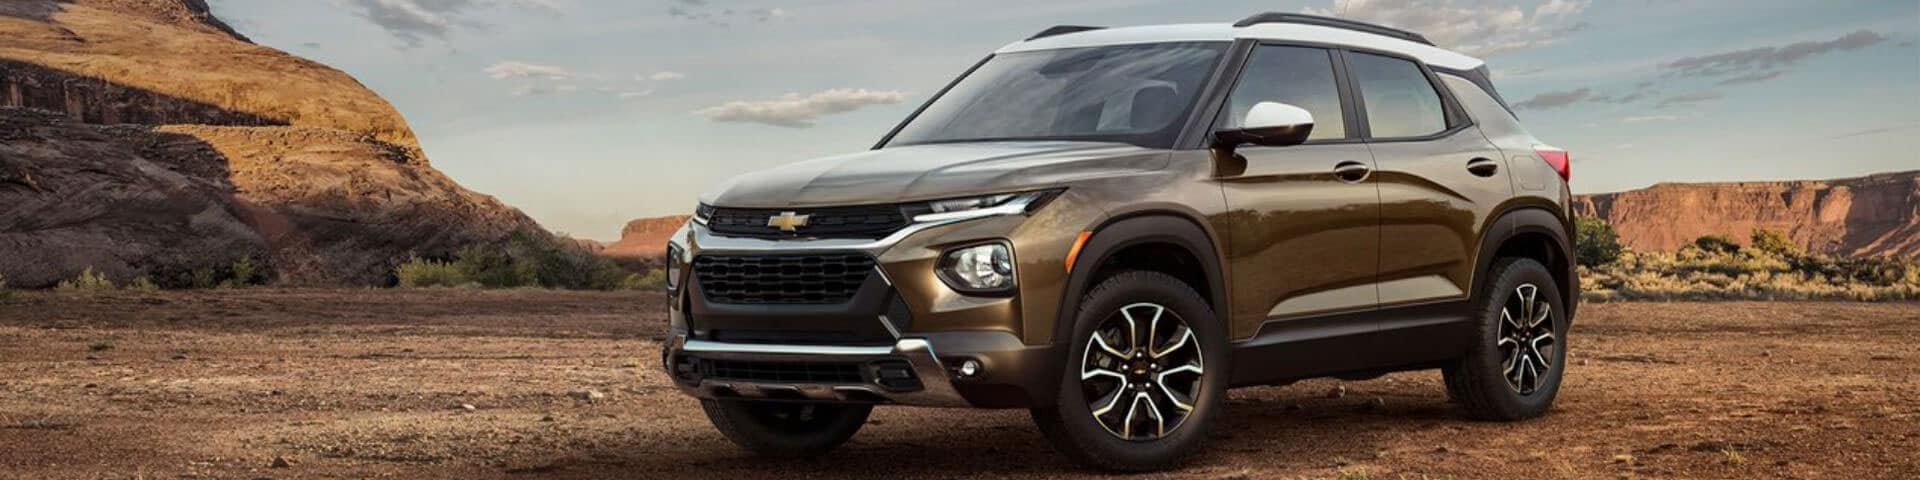 2021 Chevy Trailblazer in Buena Park